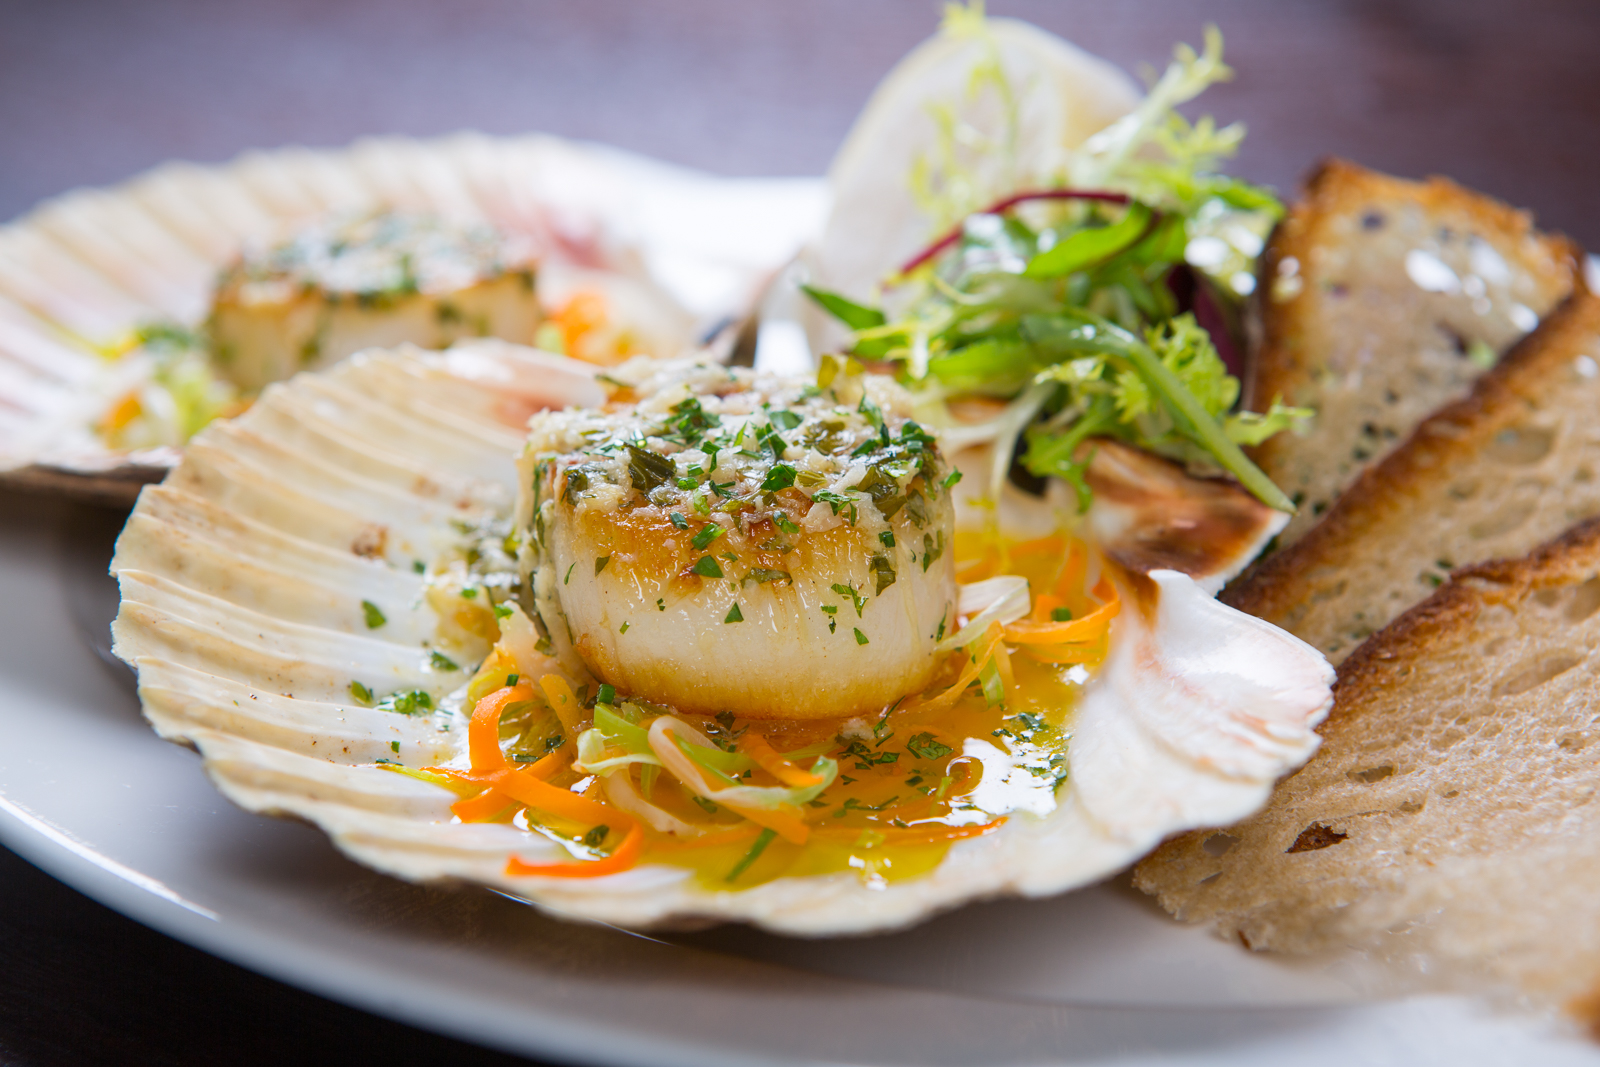 Dish of scallops in shell at Galvin Brasserie.